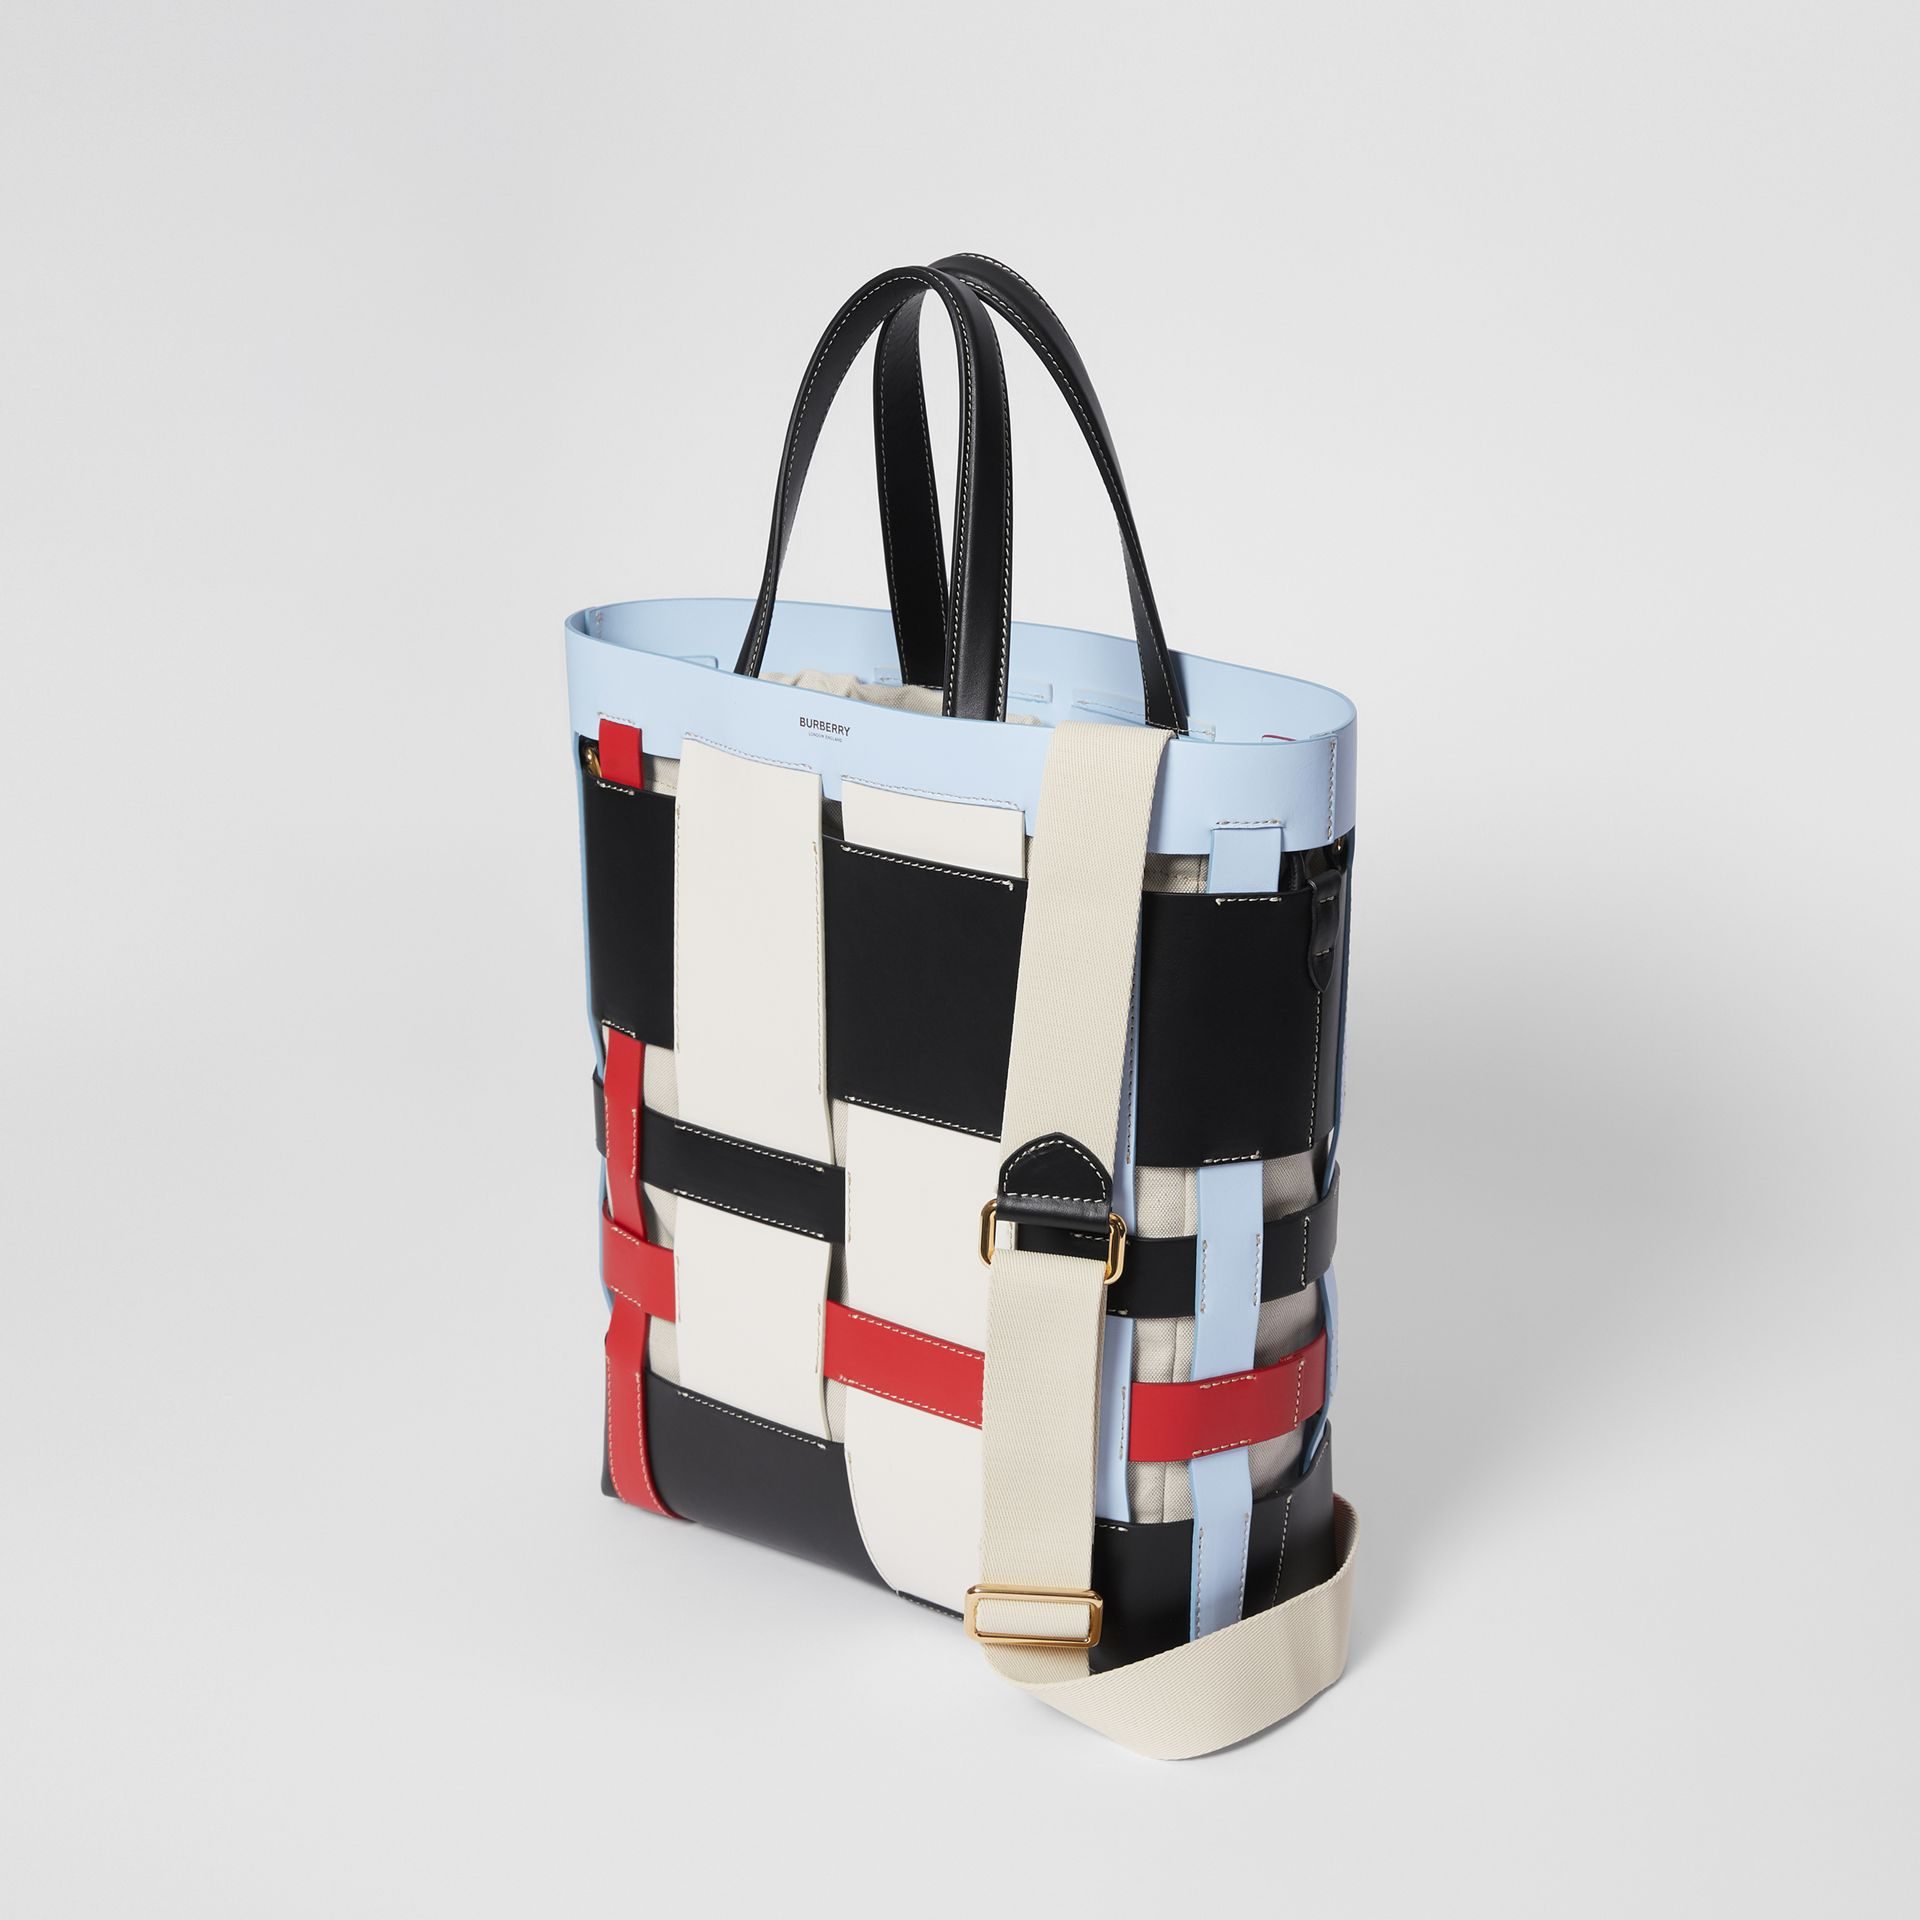 Medium Colour Block Leather Foster Tote in Blue - Women | Burberry - gallery image 3